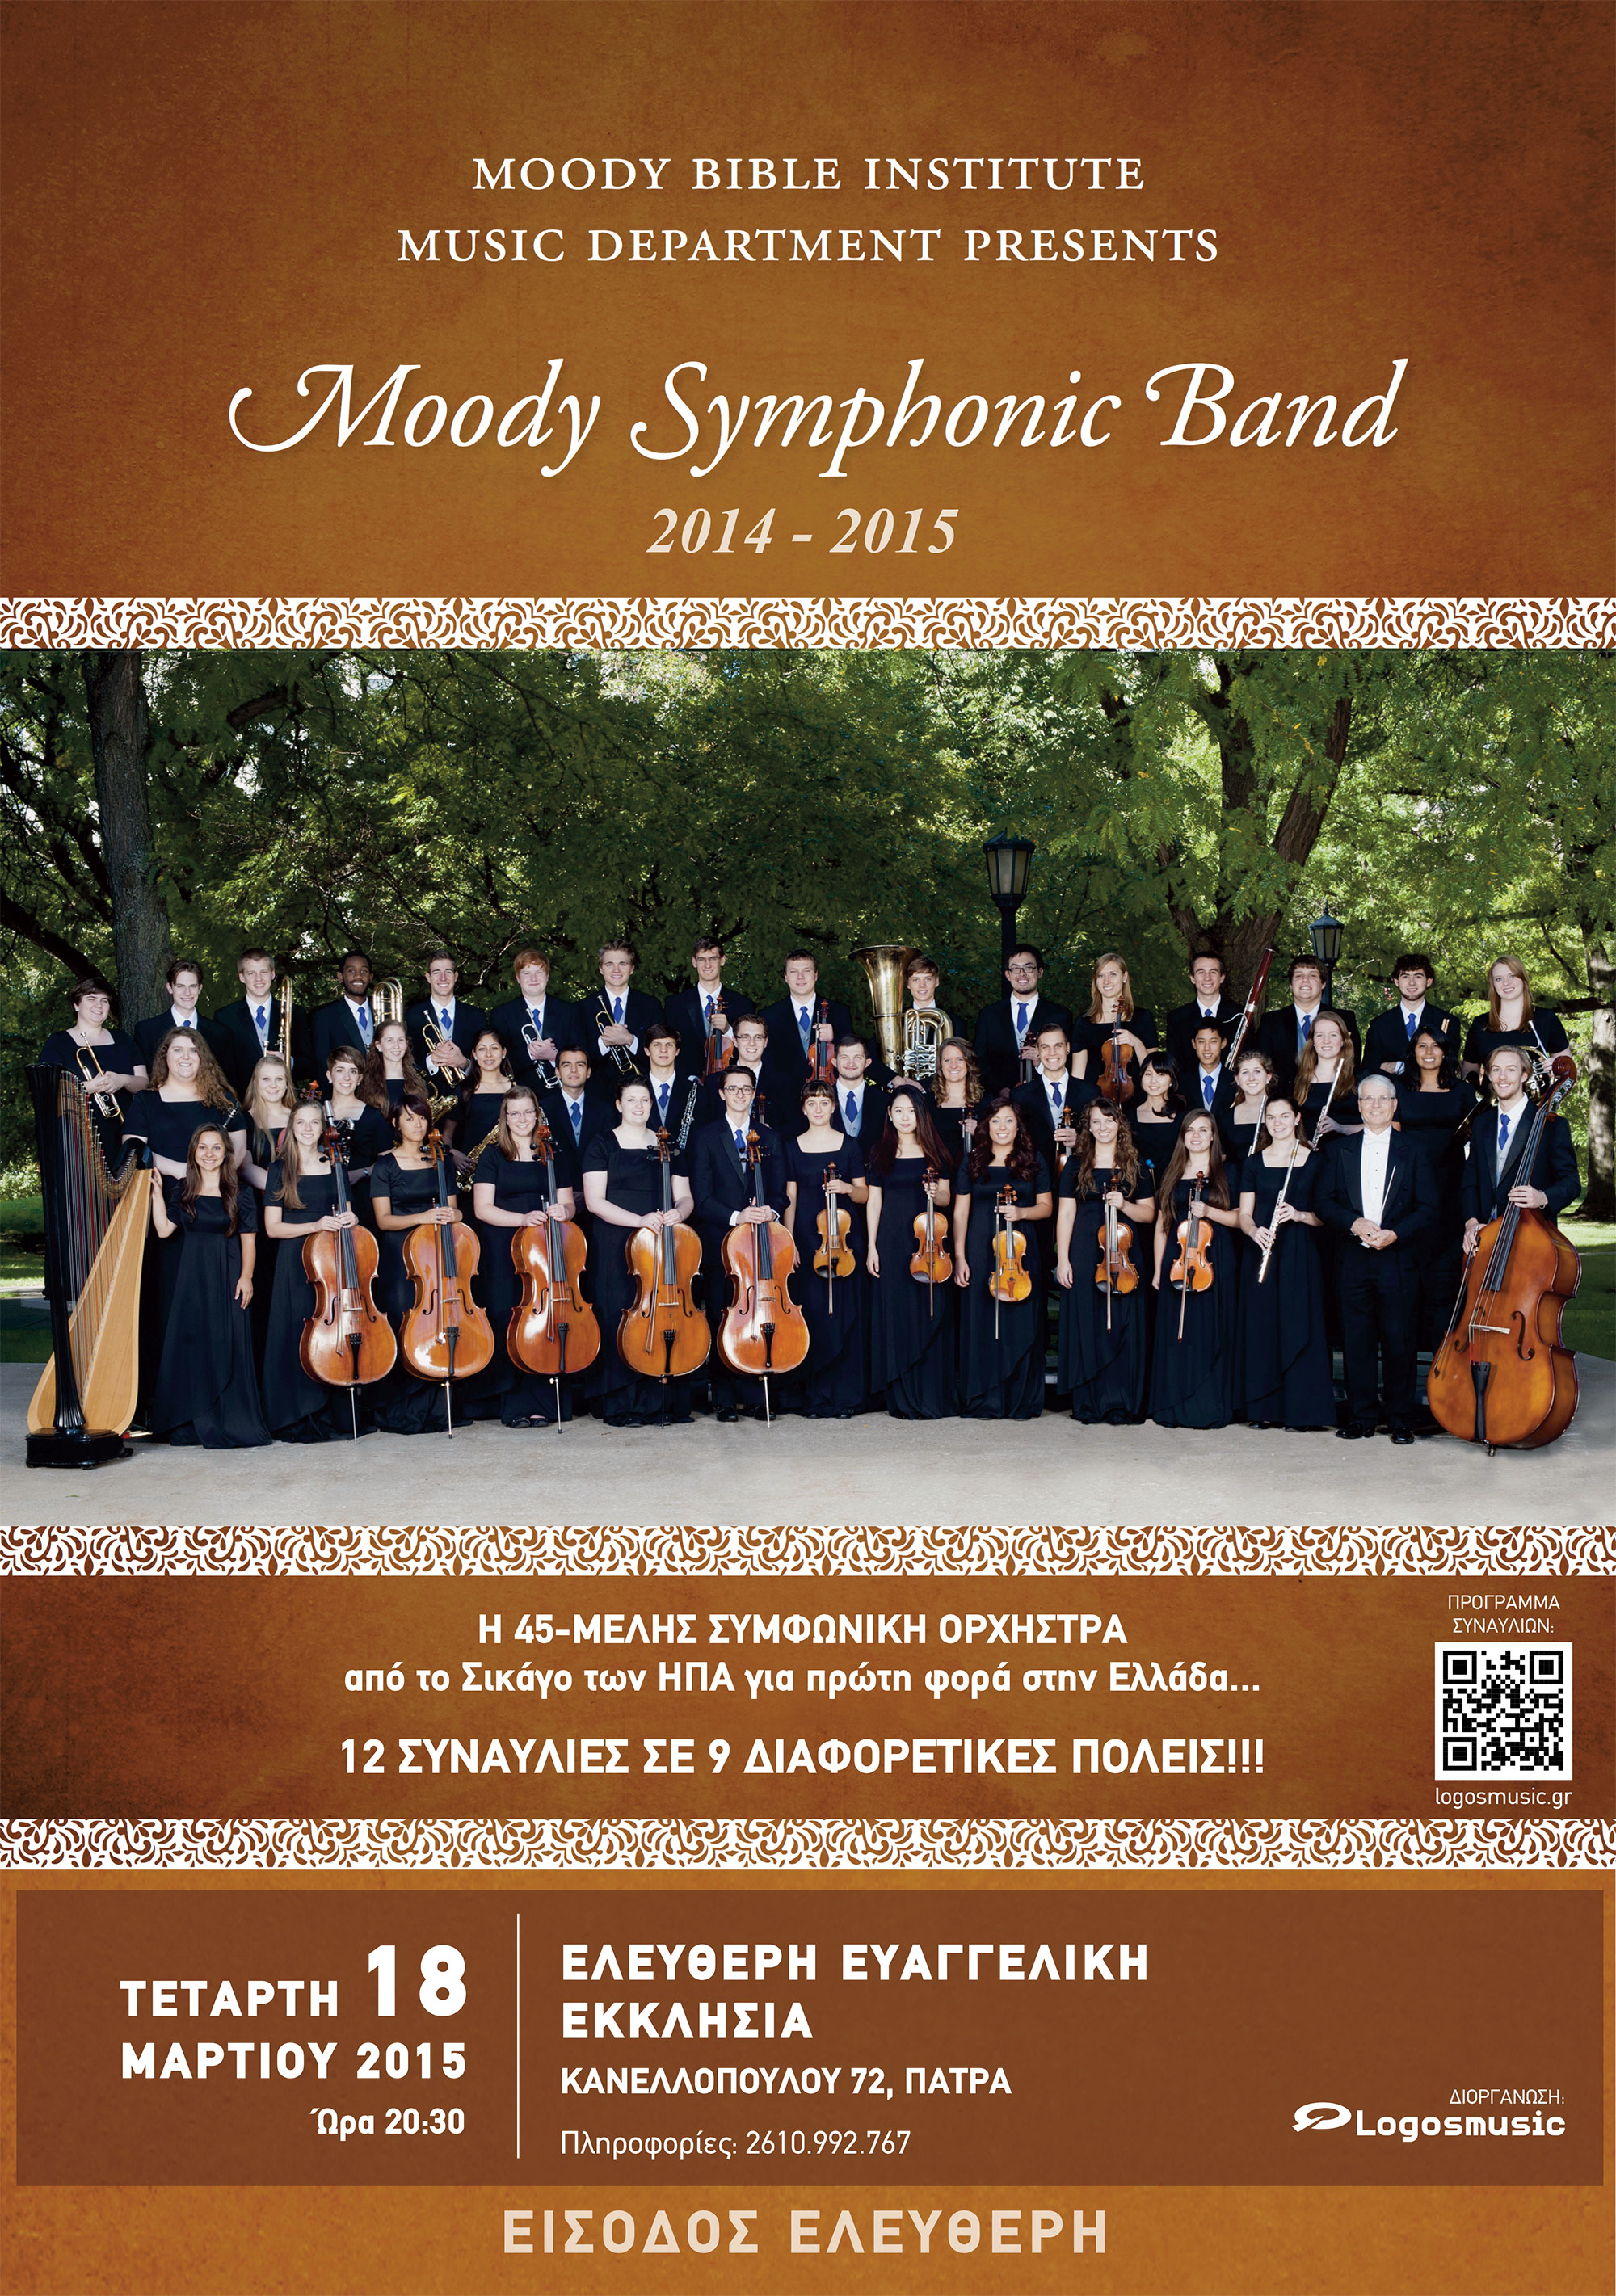 POSTER - MOODY SYMPHONIC BAND, Συναυλία Πάτρα